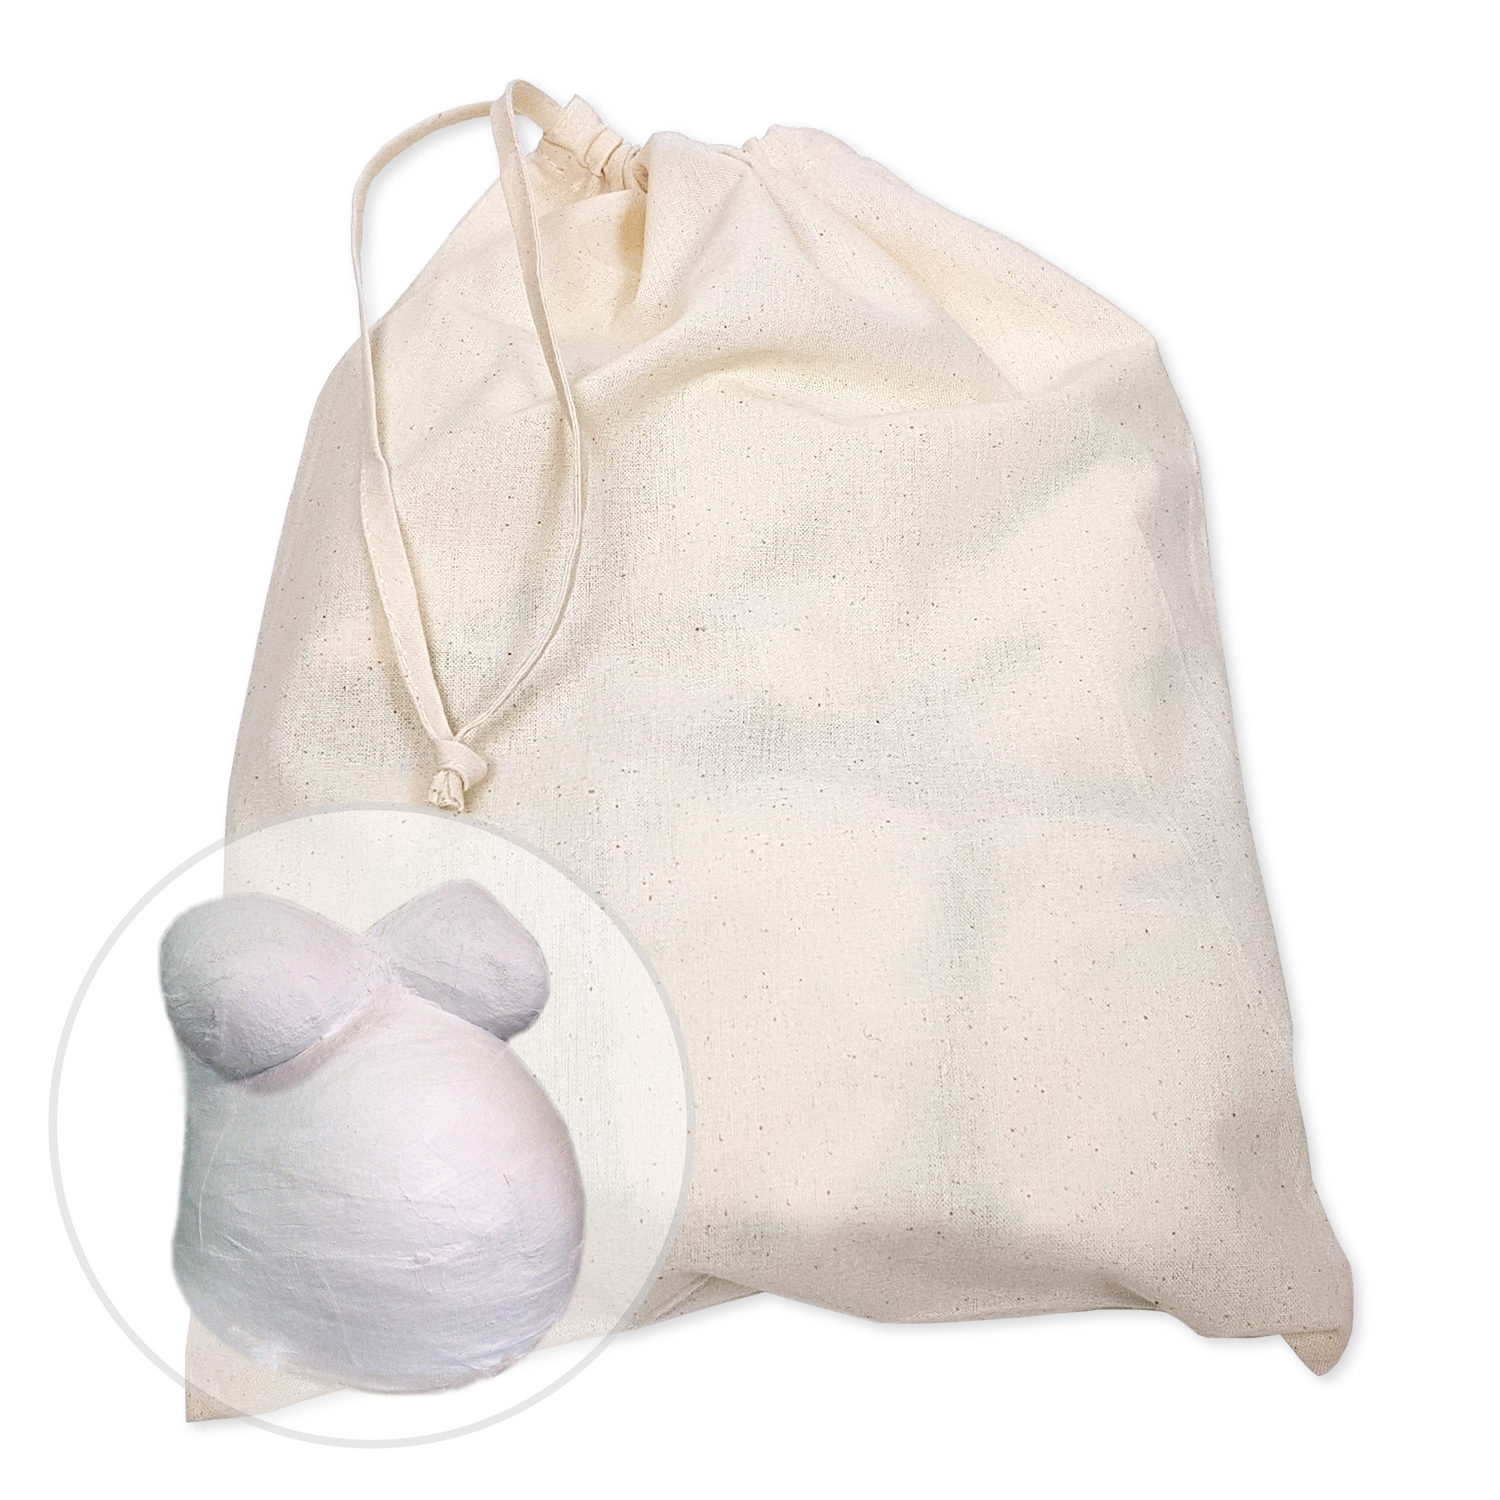 All you need to cast your pregnant belly Belly Casting Kit